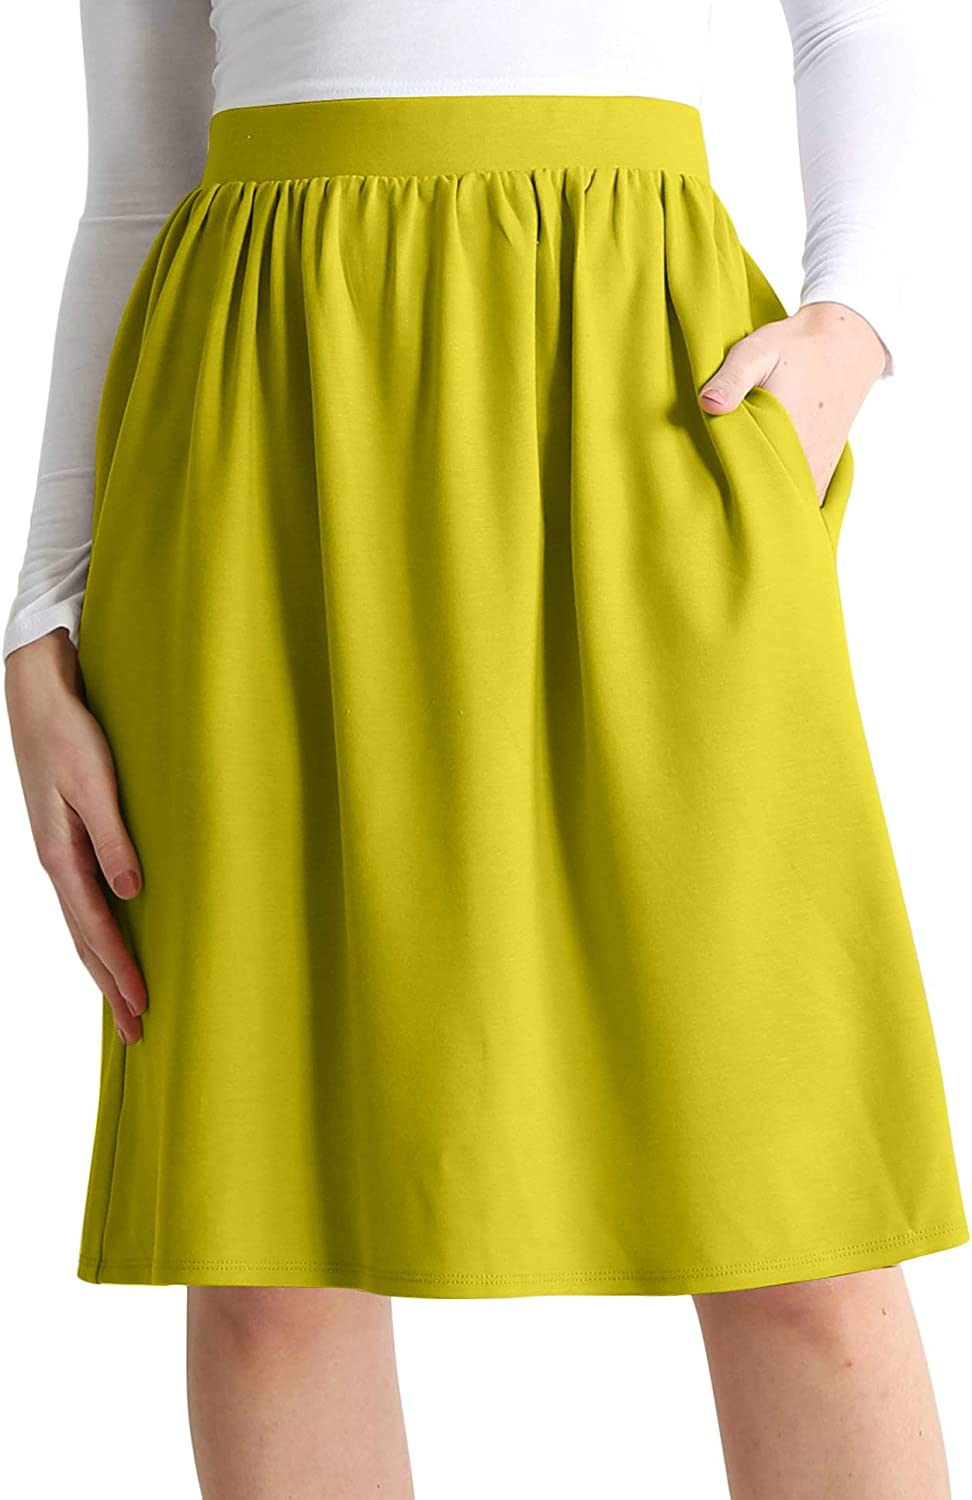 Simlu Womens Knee Length Flare A-Line Skirt with Side Pockets Regular and Plus Size - Made in USA